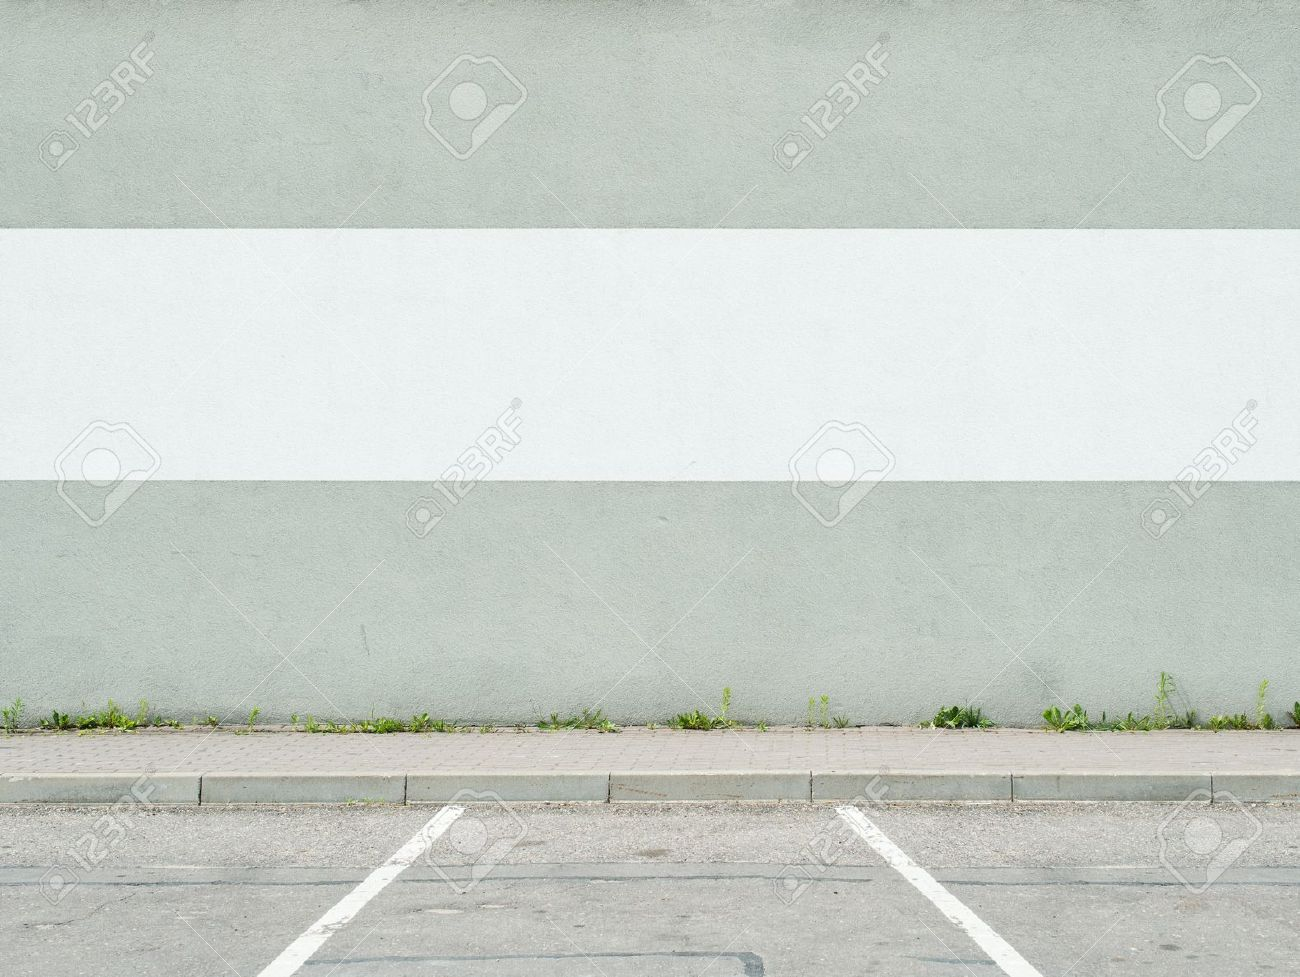 Parking lot wall and sidewalk Stock Photo - 20612971